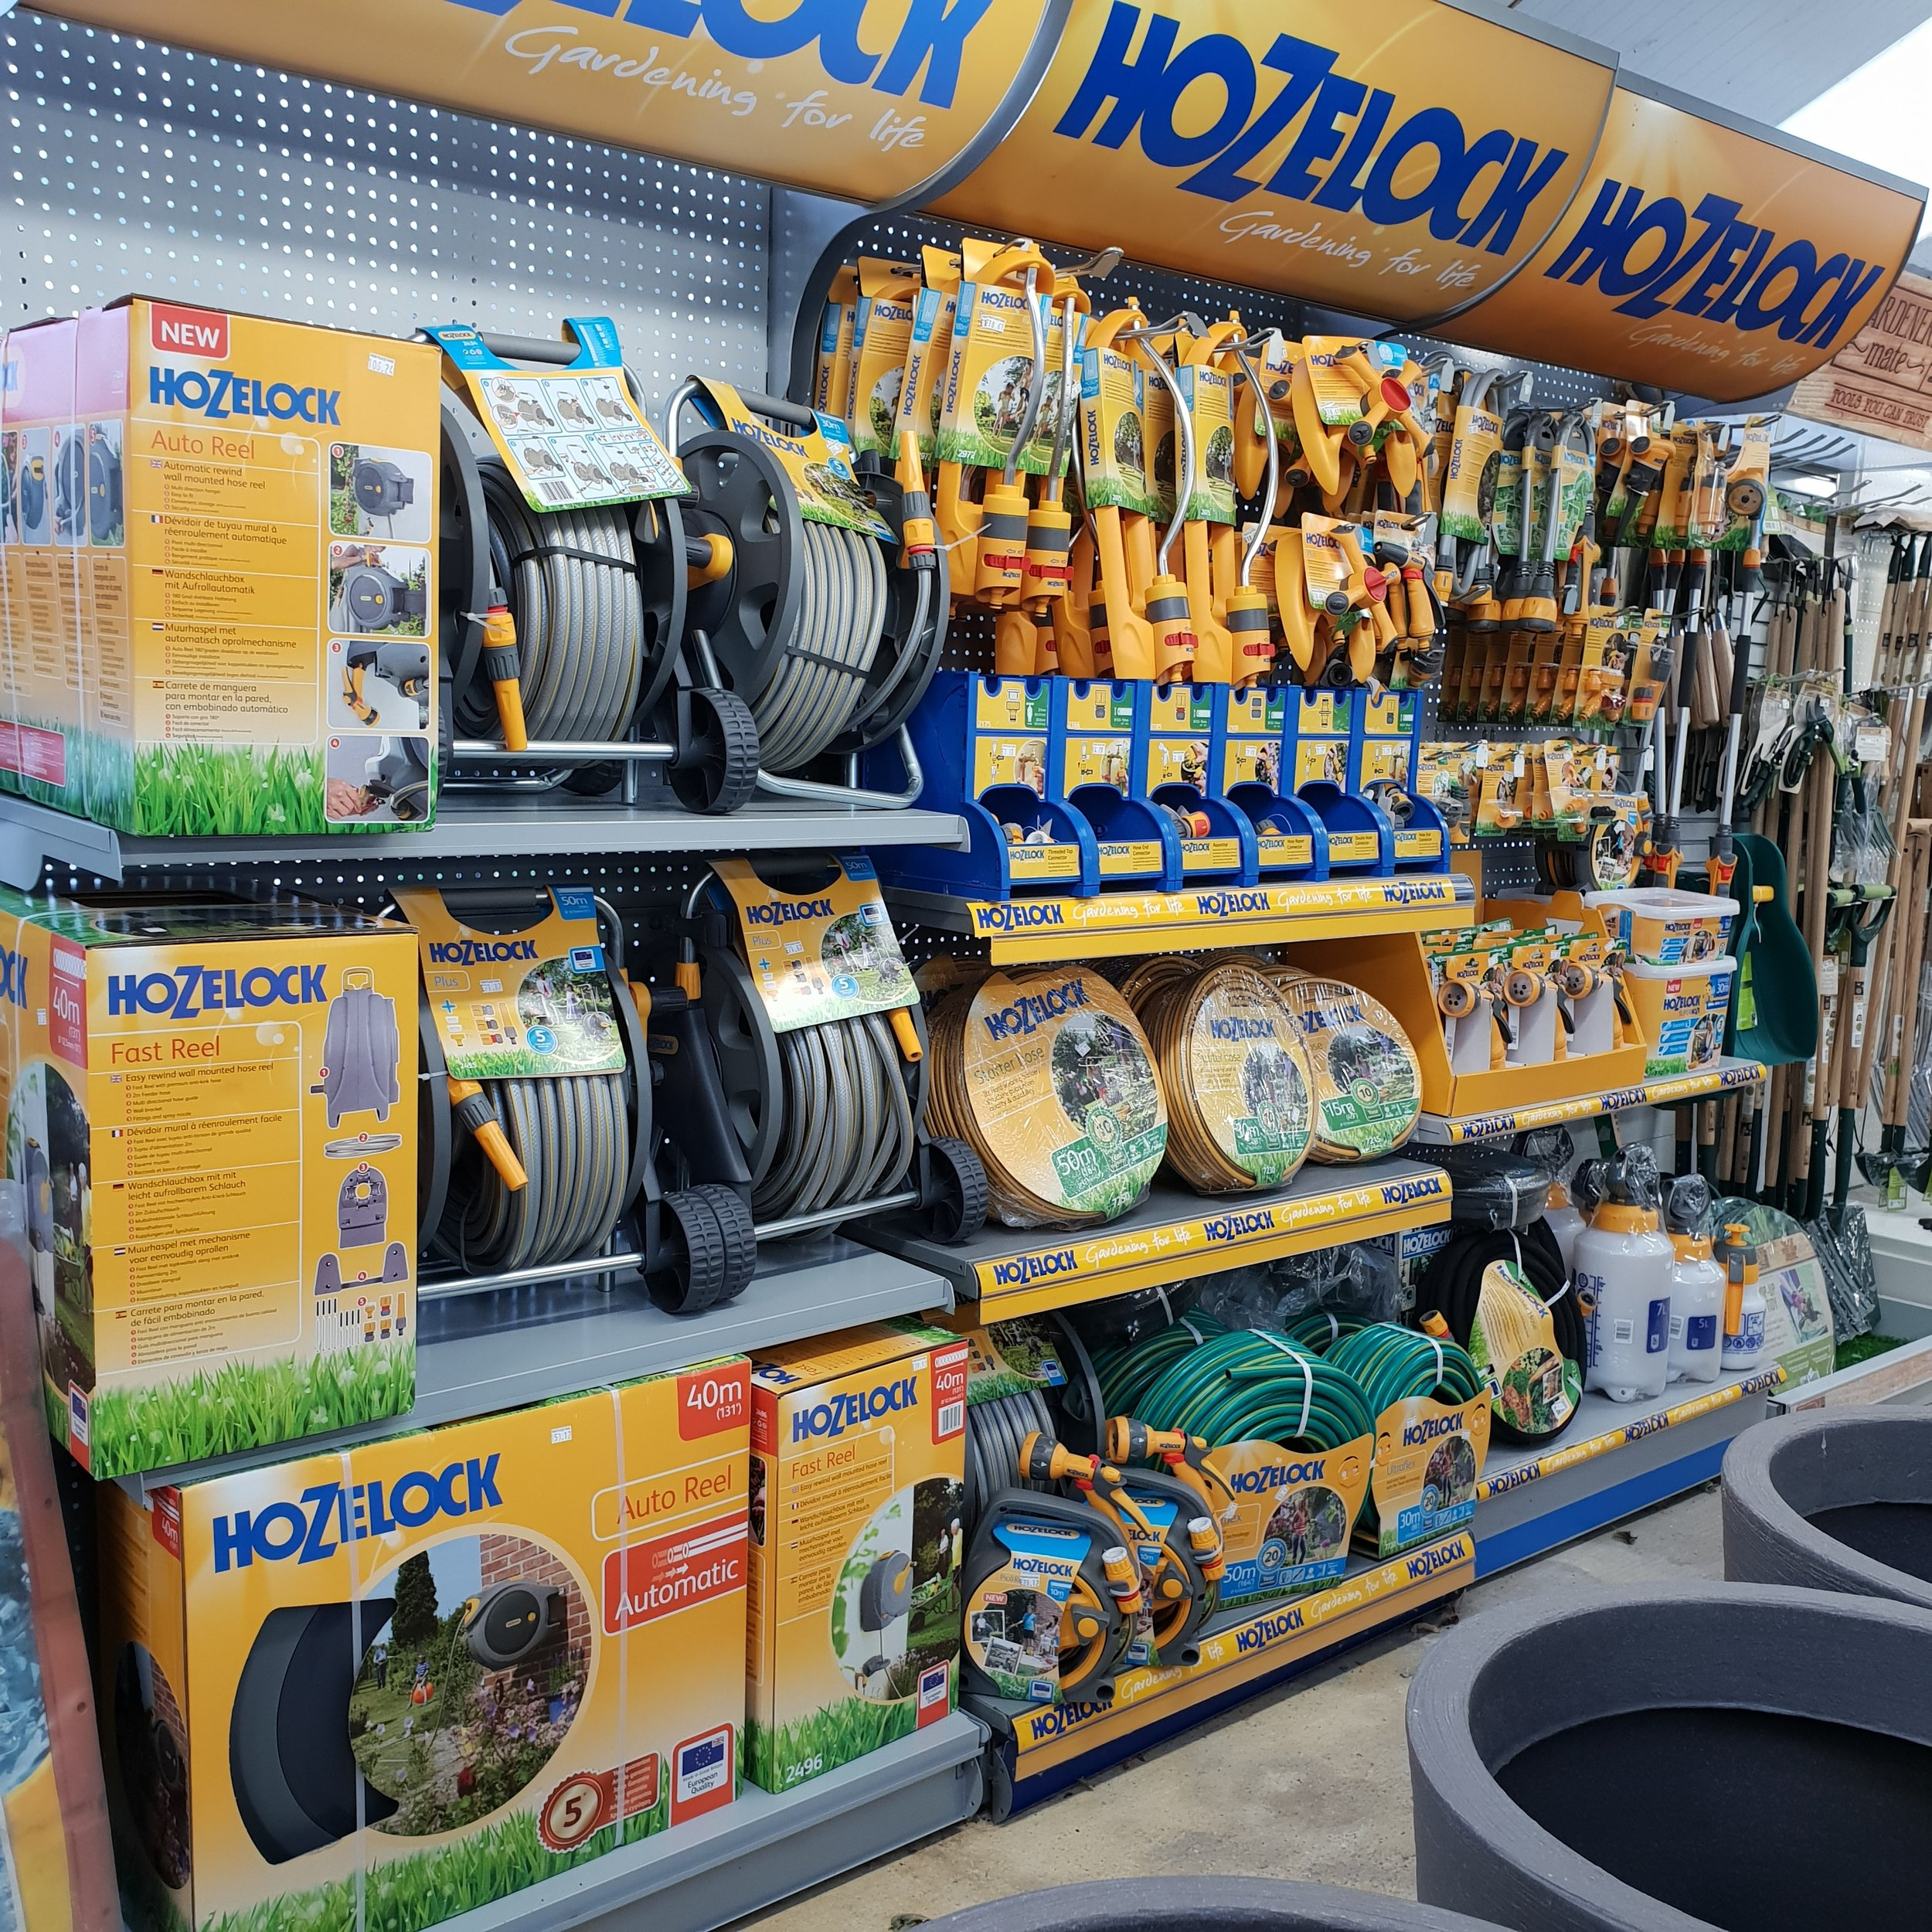 All things watering - Our range includes classic reels of garden hose to automatic reeling enclosed units and water activated shrink hose.For then end of the hose we have a selection of nozzles to water by hand or sprinklers and porous pipe for a self watering system.As well as all the connections in between.All our products are Hozelock designed and manufactured so quality is no worry.